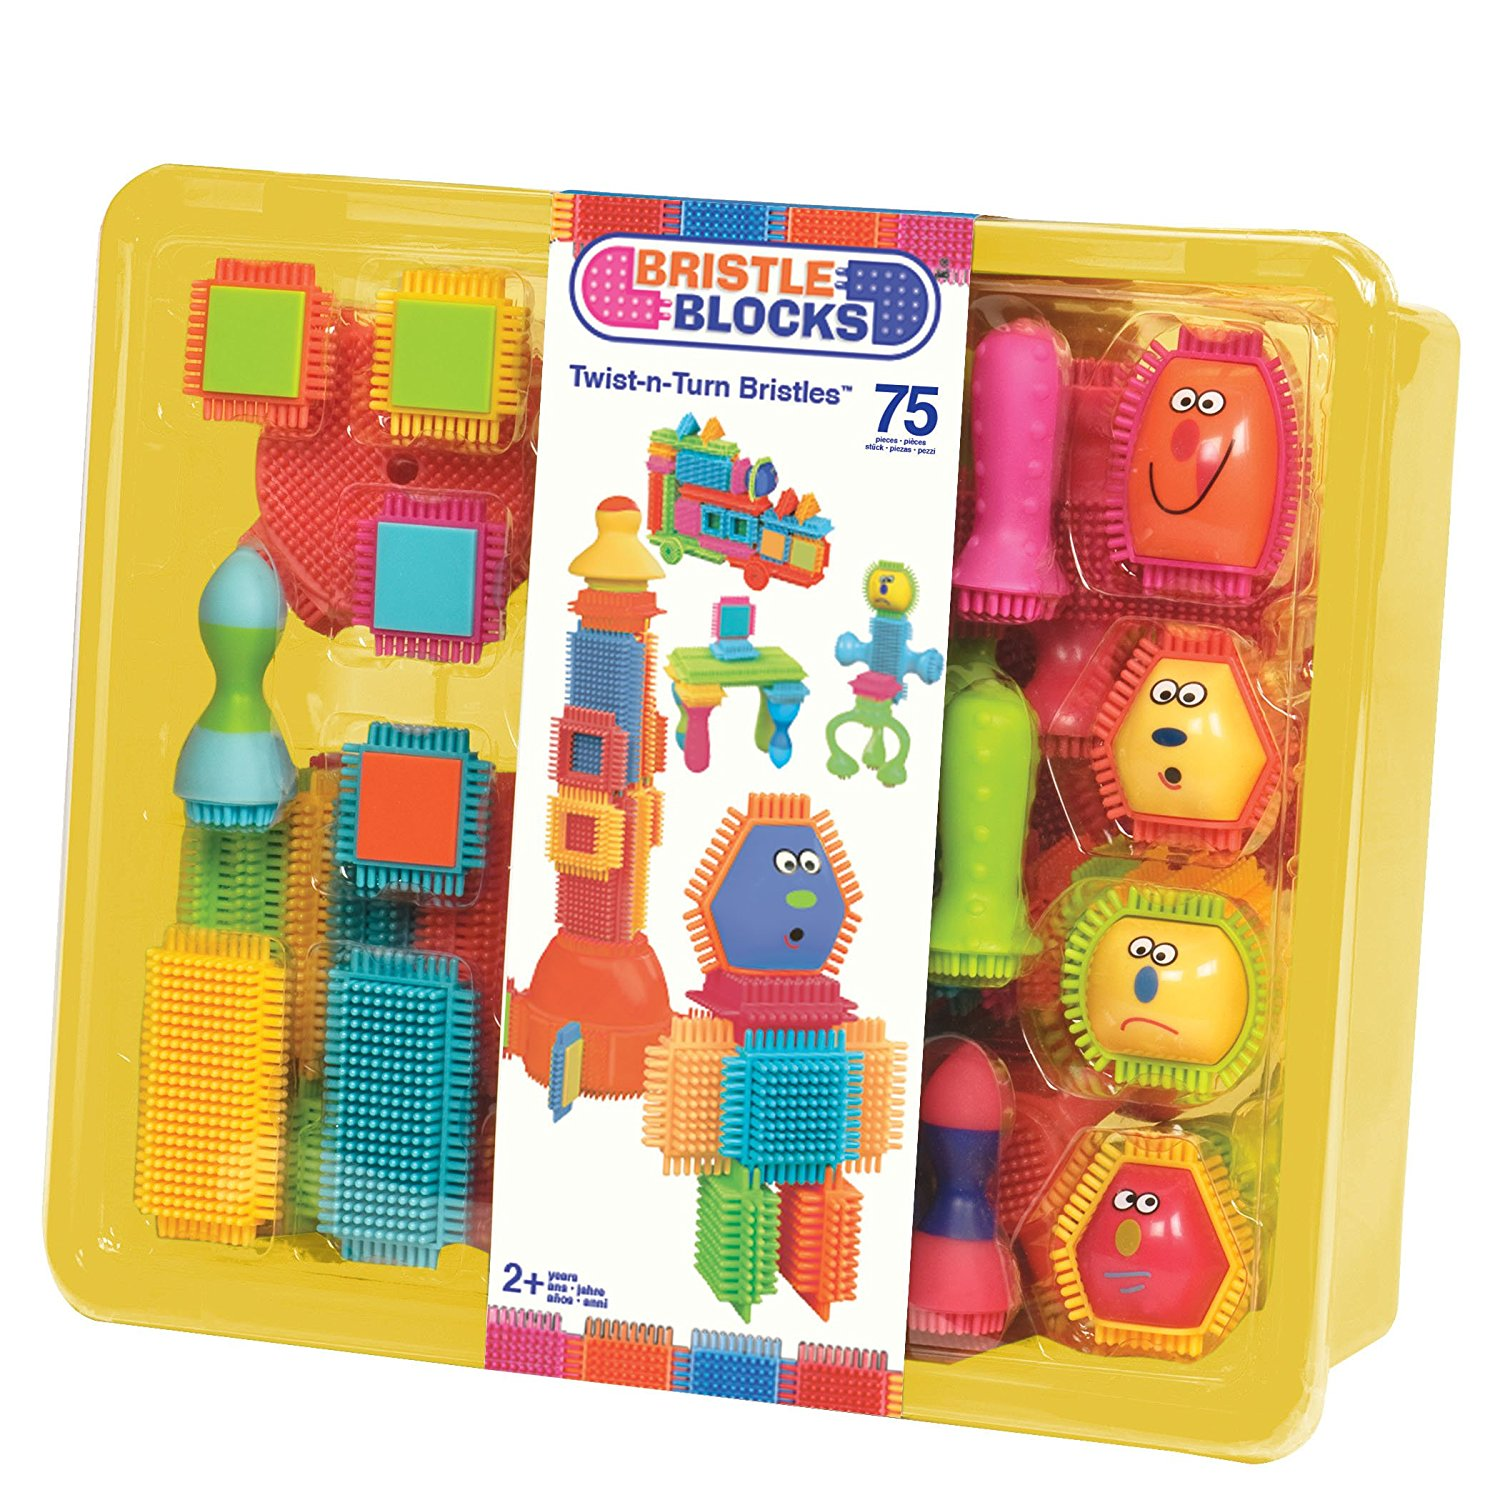 Bristle Blocks Toy Building Blocks for Toddlers 75 Pieces in Bin